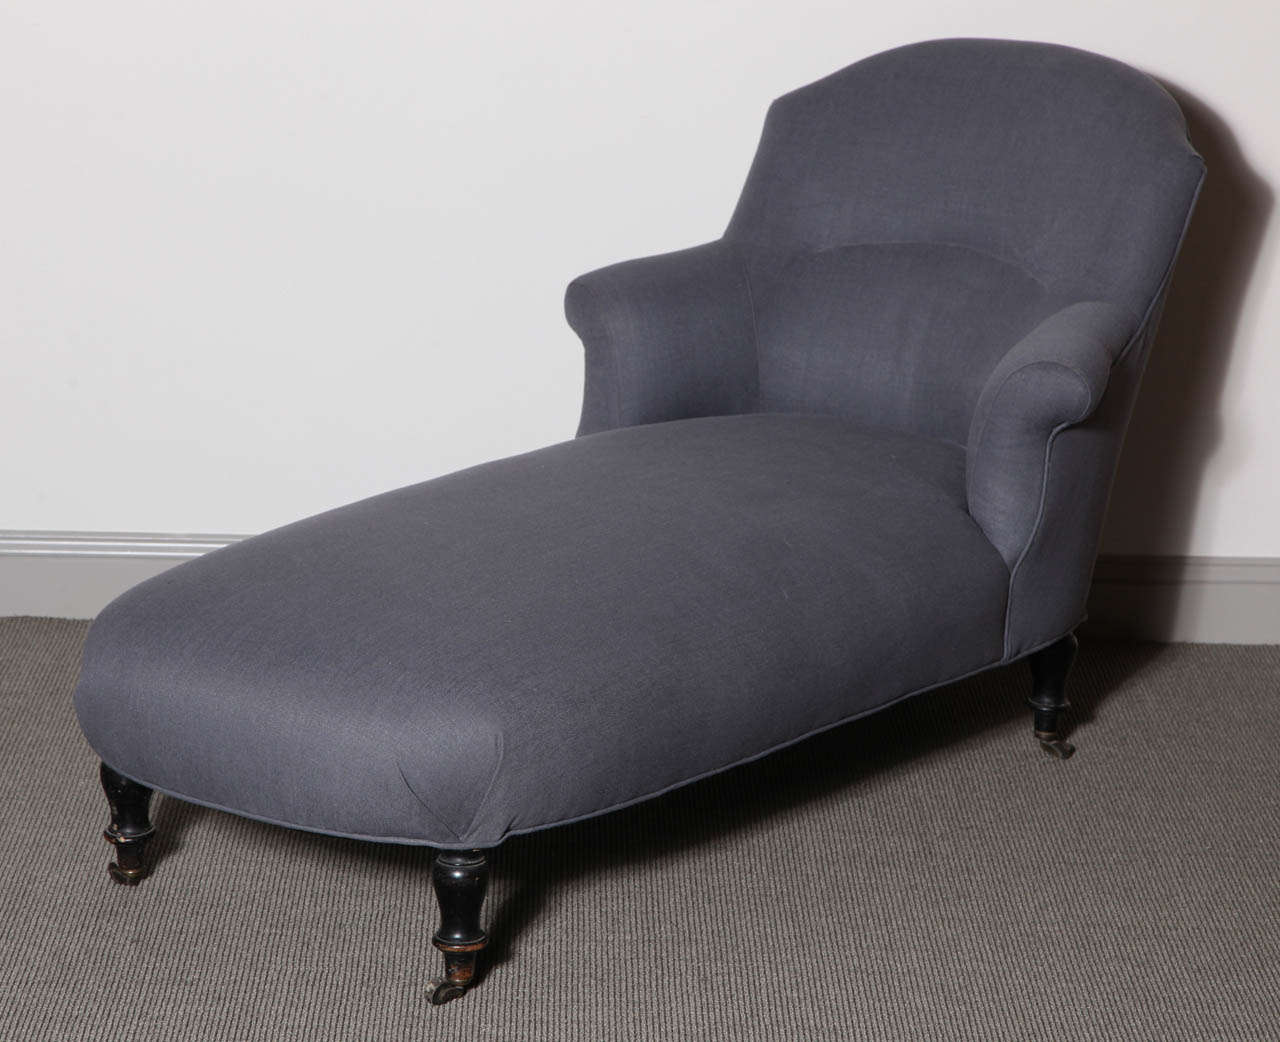 napoleon iii chaise for sale at 1stdibs. Black Bedroom Furniture Sets. Home Design Ideas